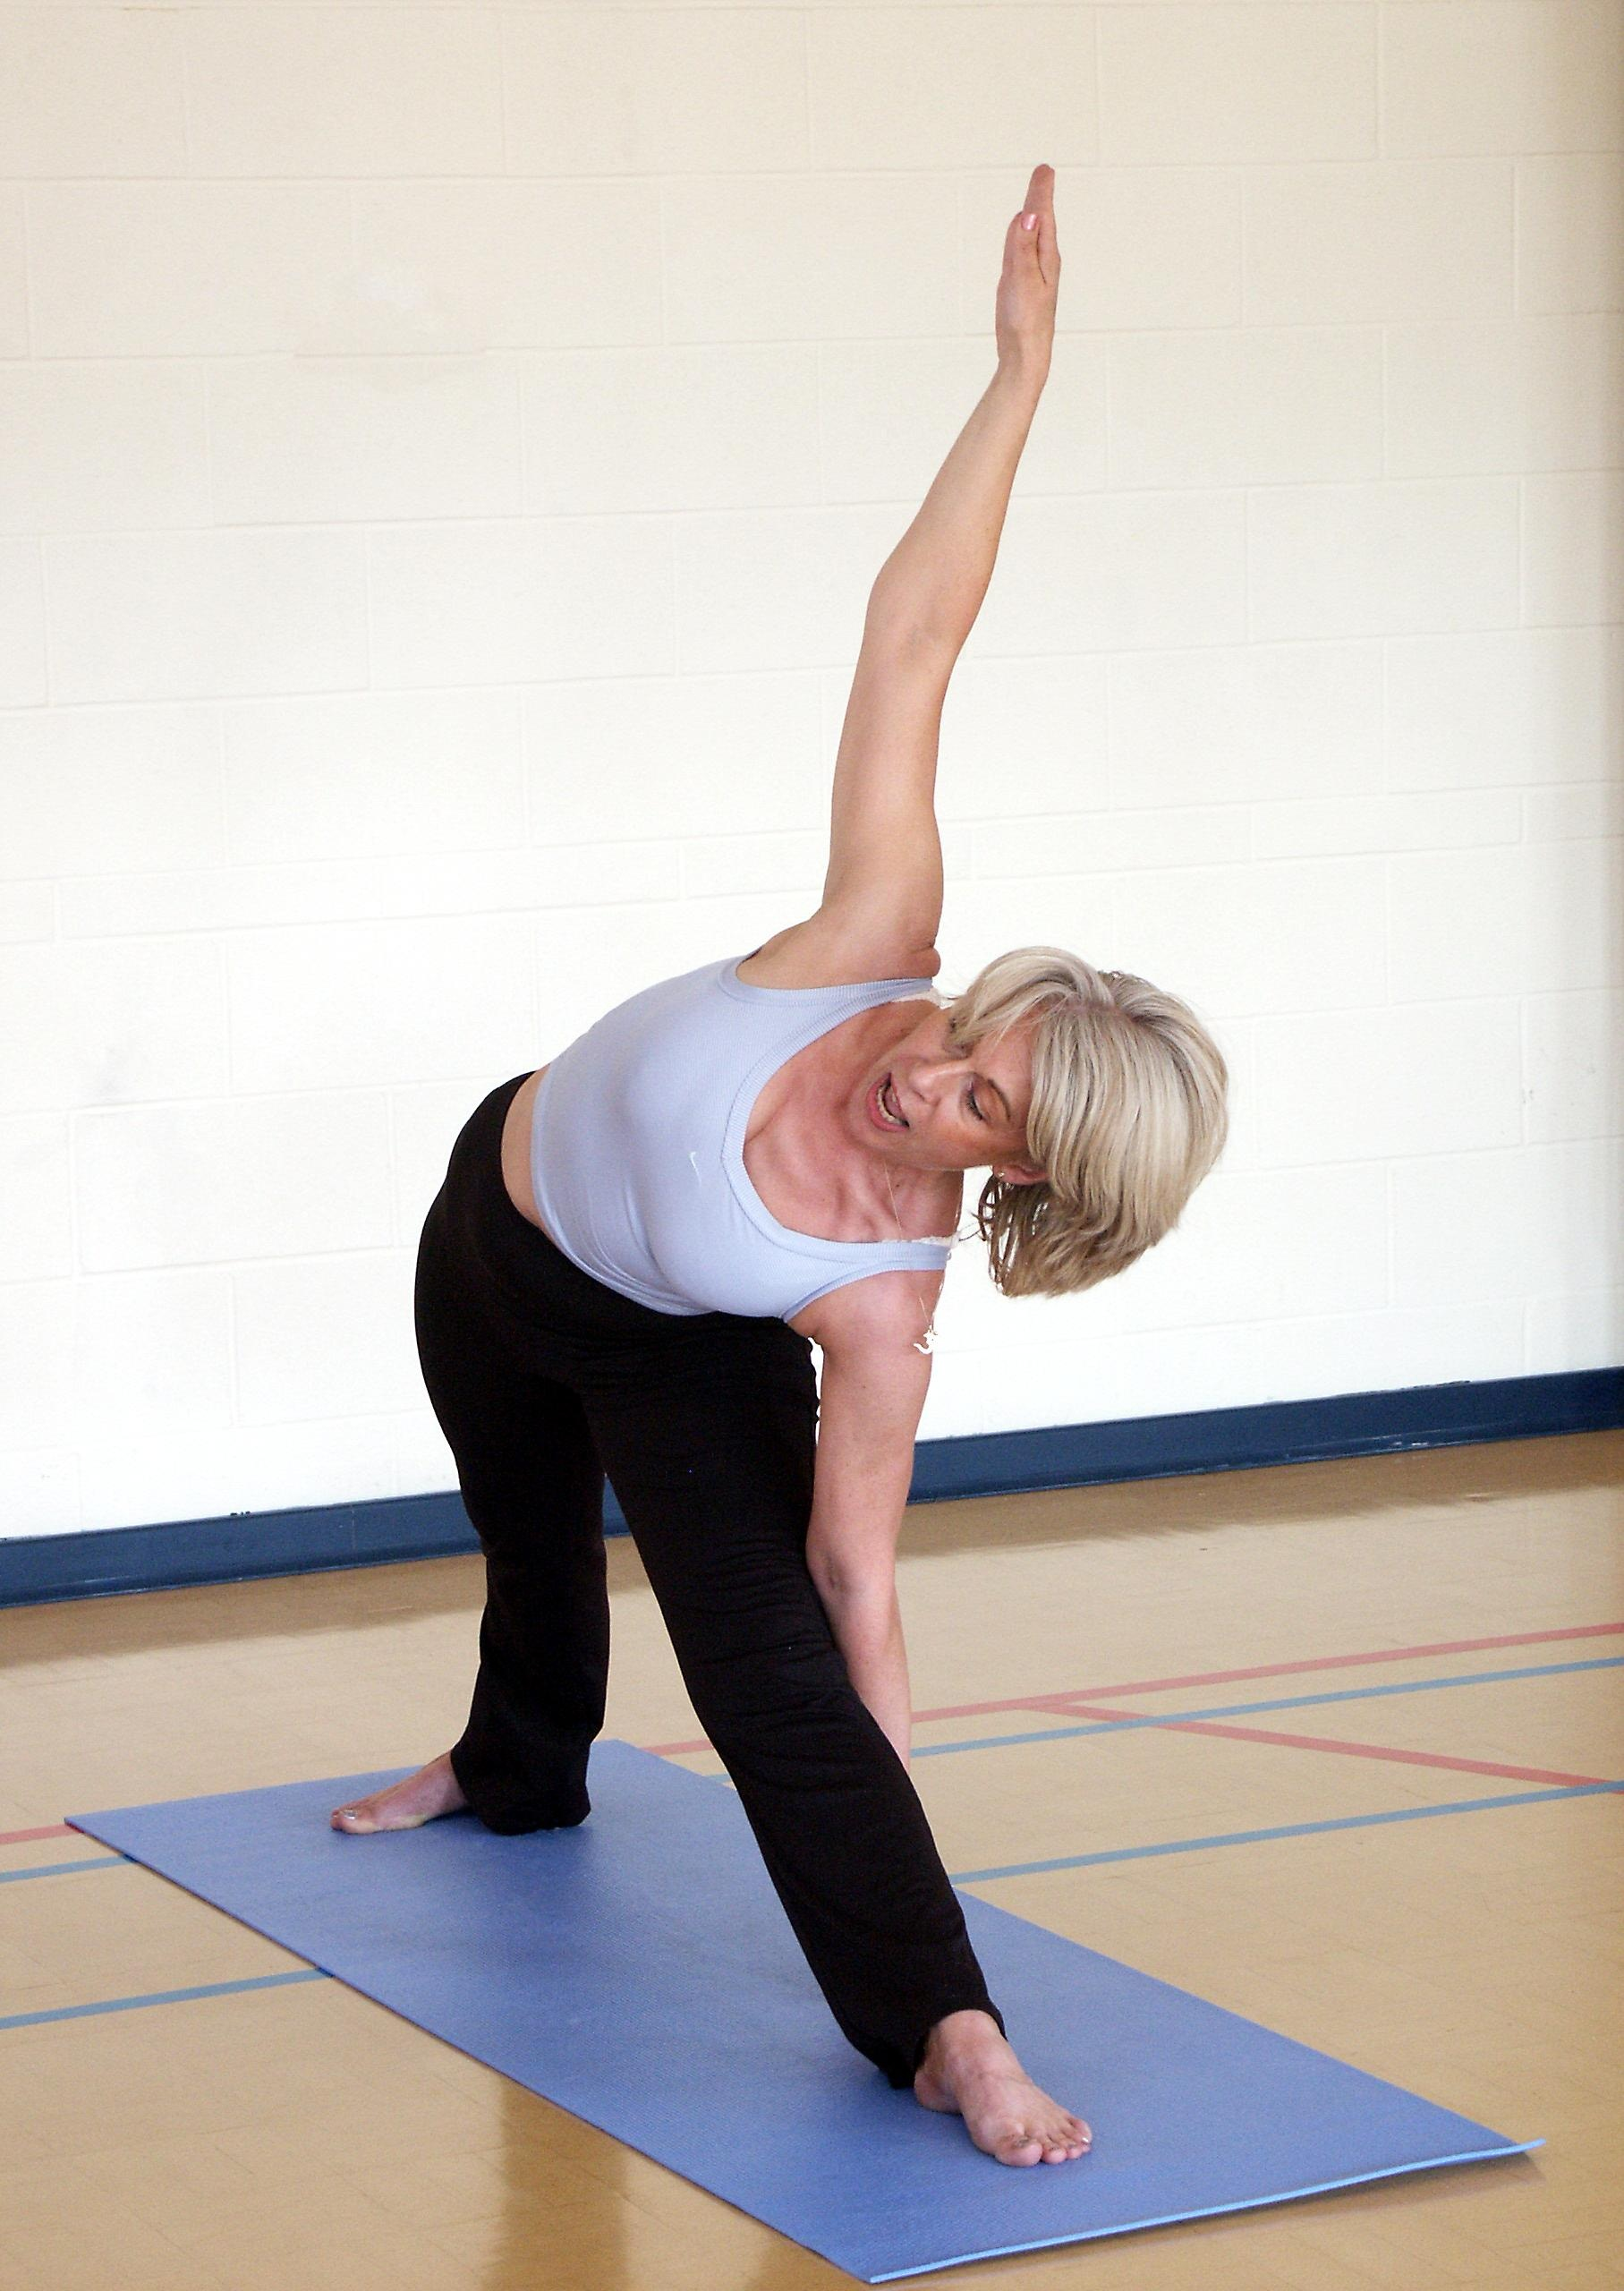 exercise-arm-fitness-muscle-activity-sports-1067183-pxhere.com